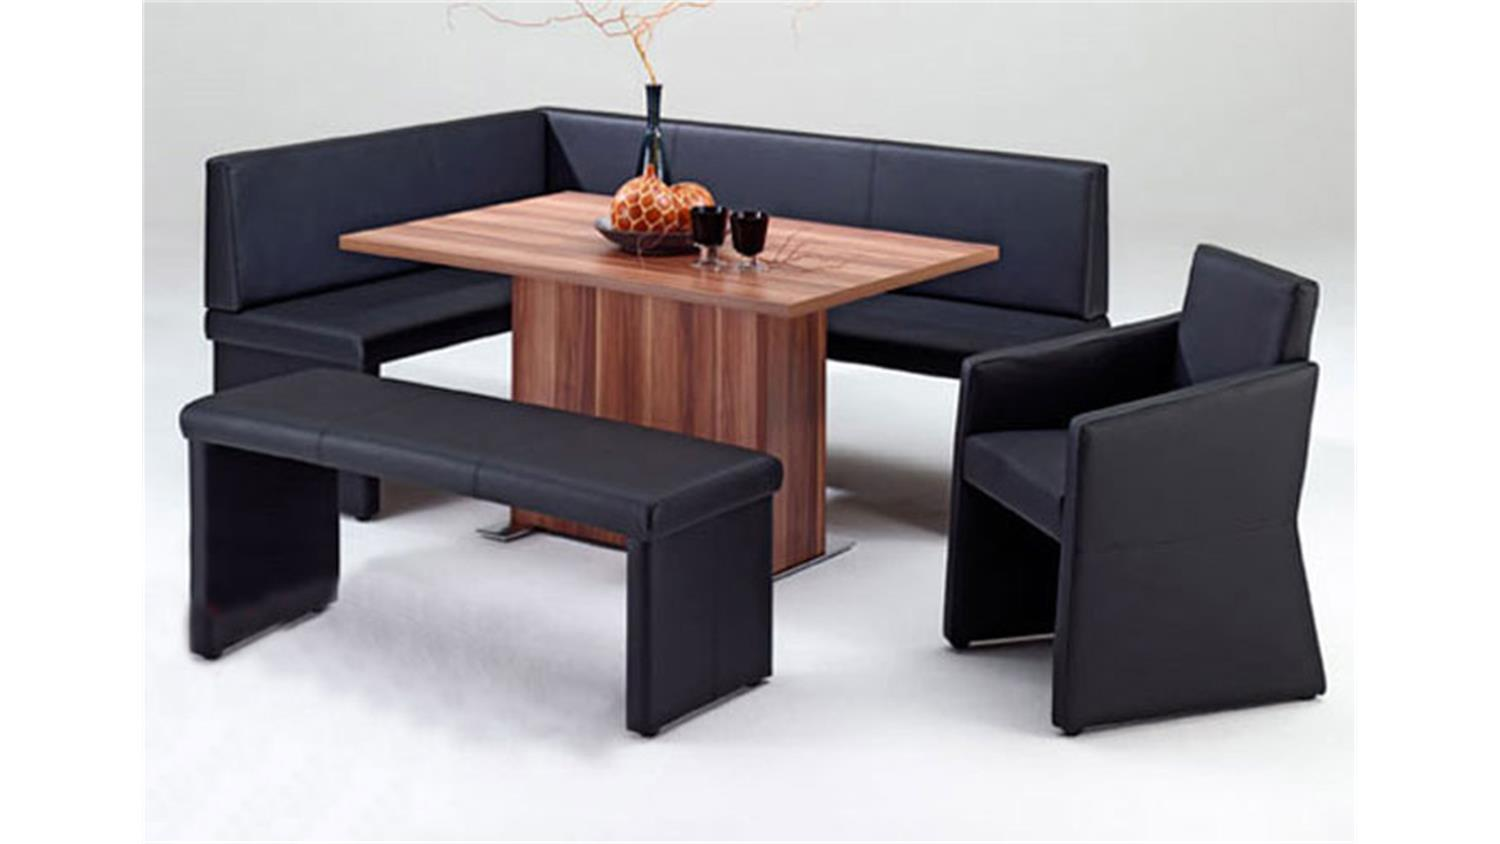 eckbank sting polsterbank bank gepolstert in braun 140x200. Black Bedroom Furniture Sets. Home Design Ideas